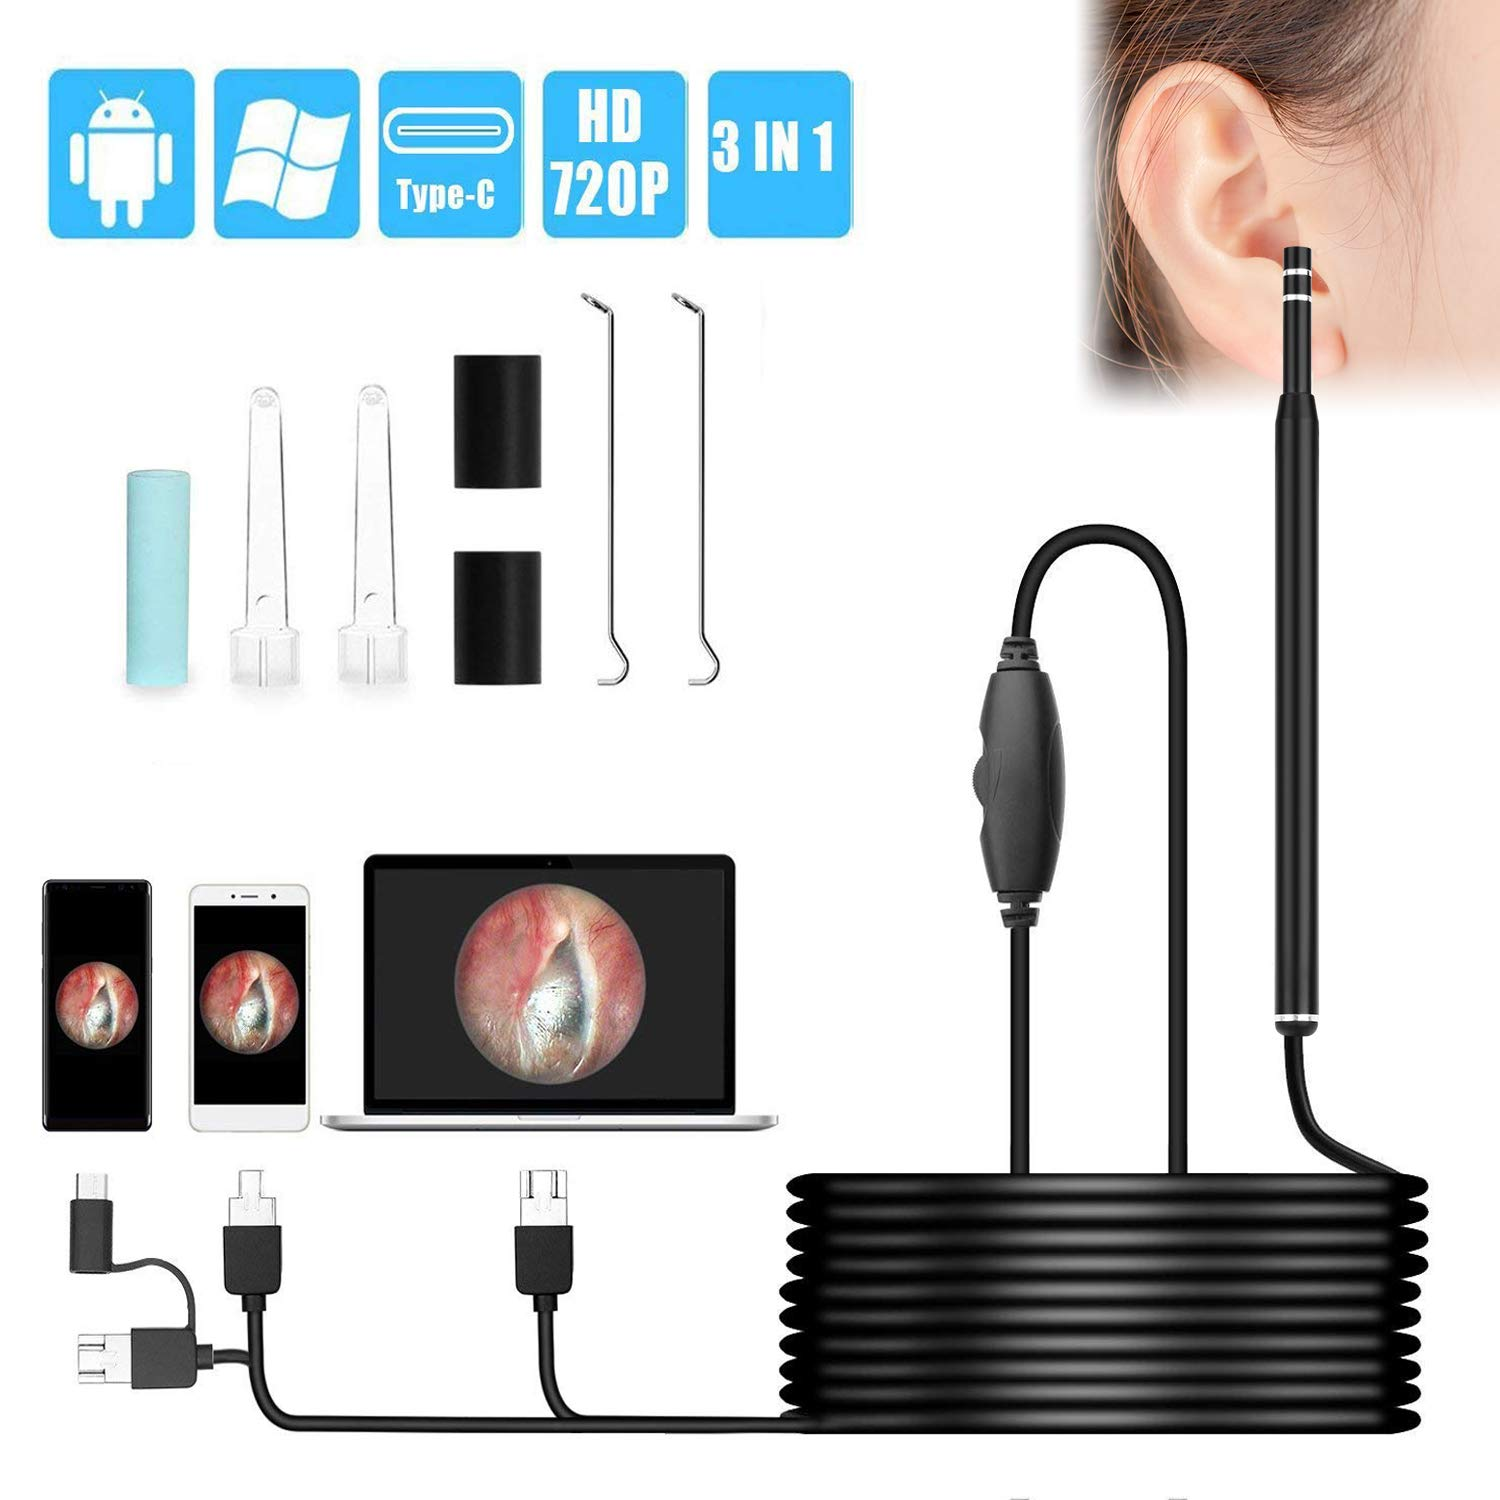 USB Otoscope, VSATEN Digital Ear Endoscope 720HD Ear Inspection Camera with 6 Adjustable LED Lights for USB-C & Micro USB Android Smartphone Tablet, Windows & Macbook OS Computer by VSATEN